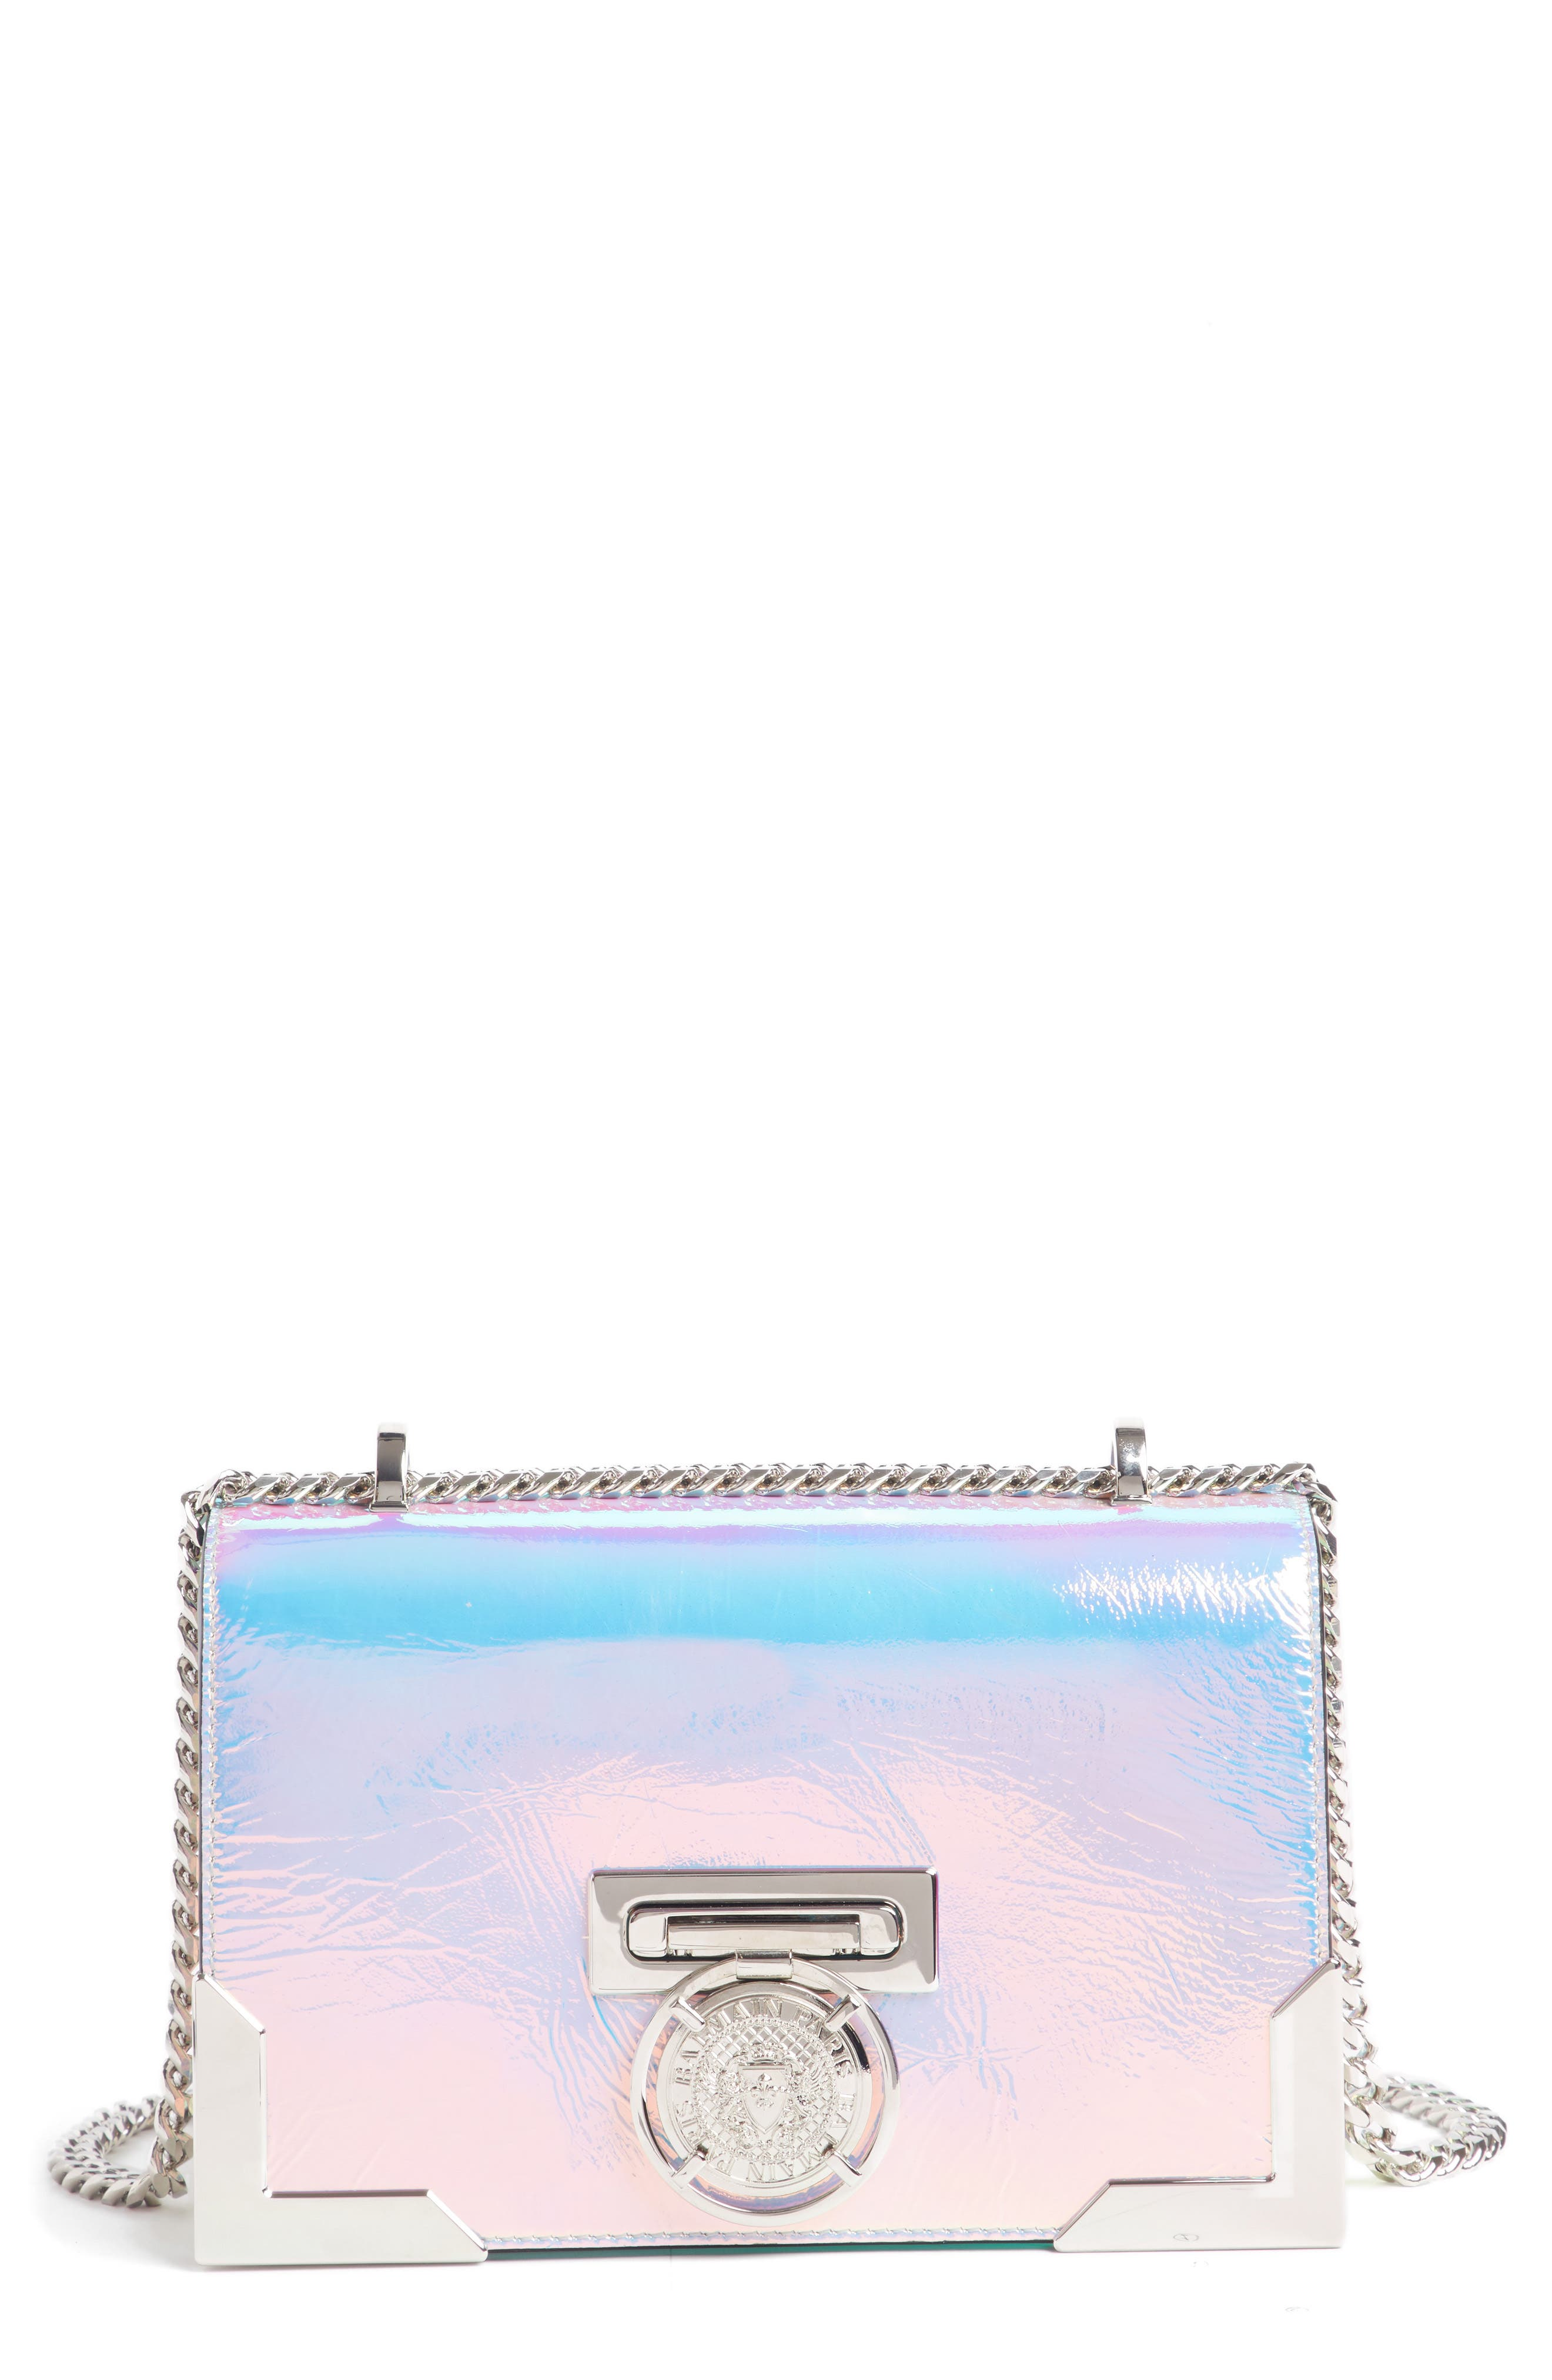 BALMAIN Baby Box Holographic Leather Shoulder Bag, Main, color, 650